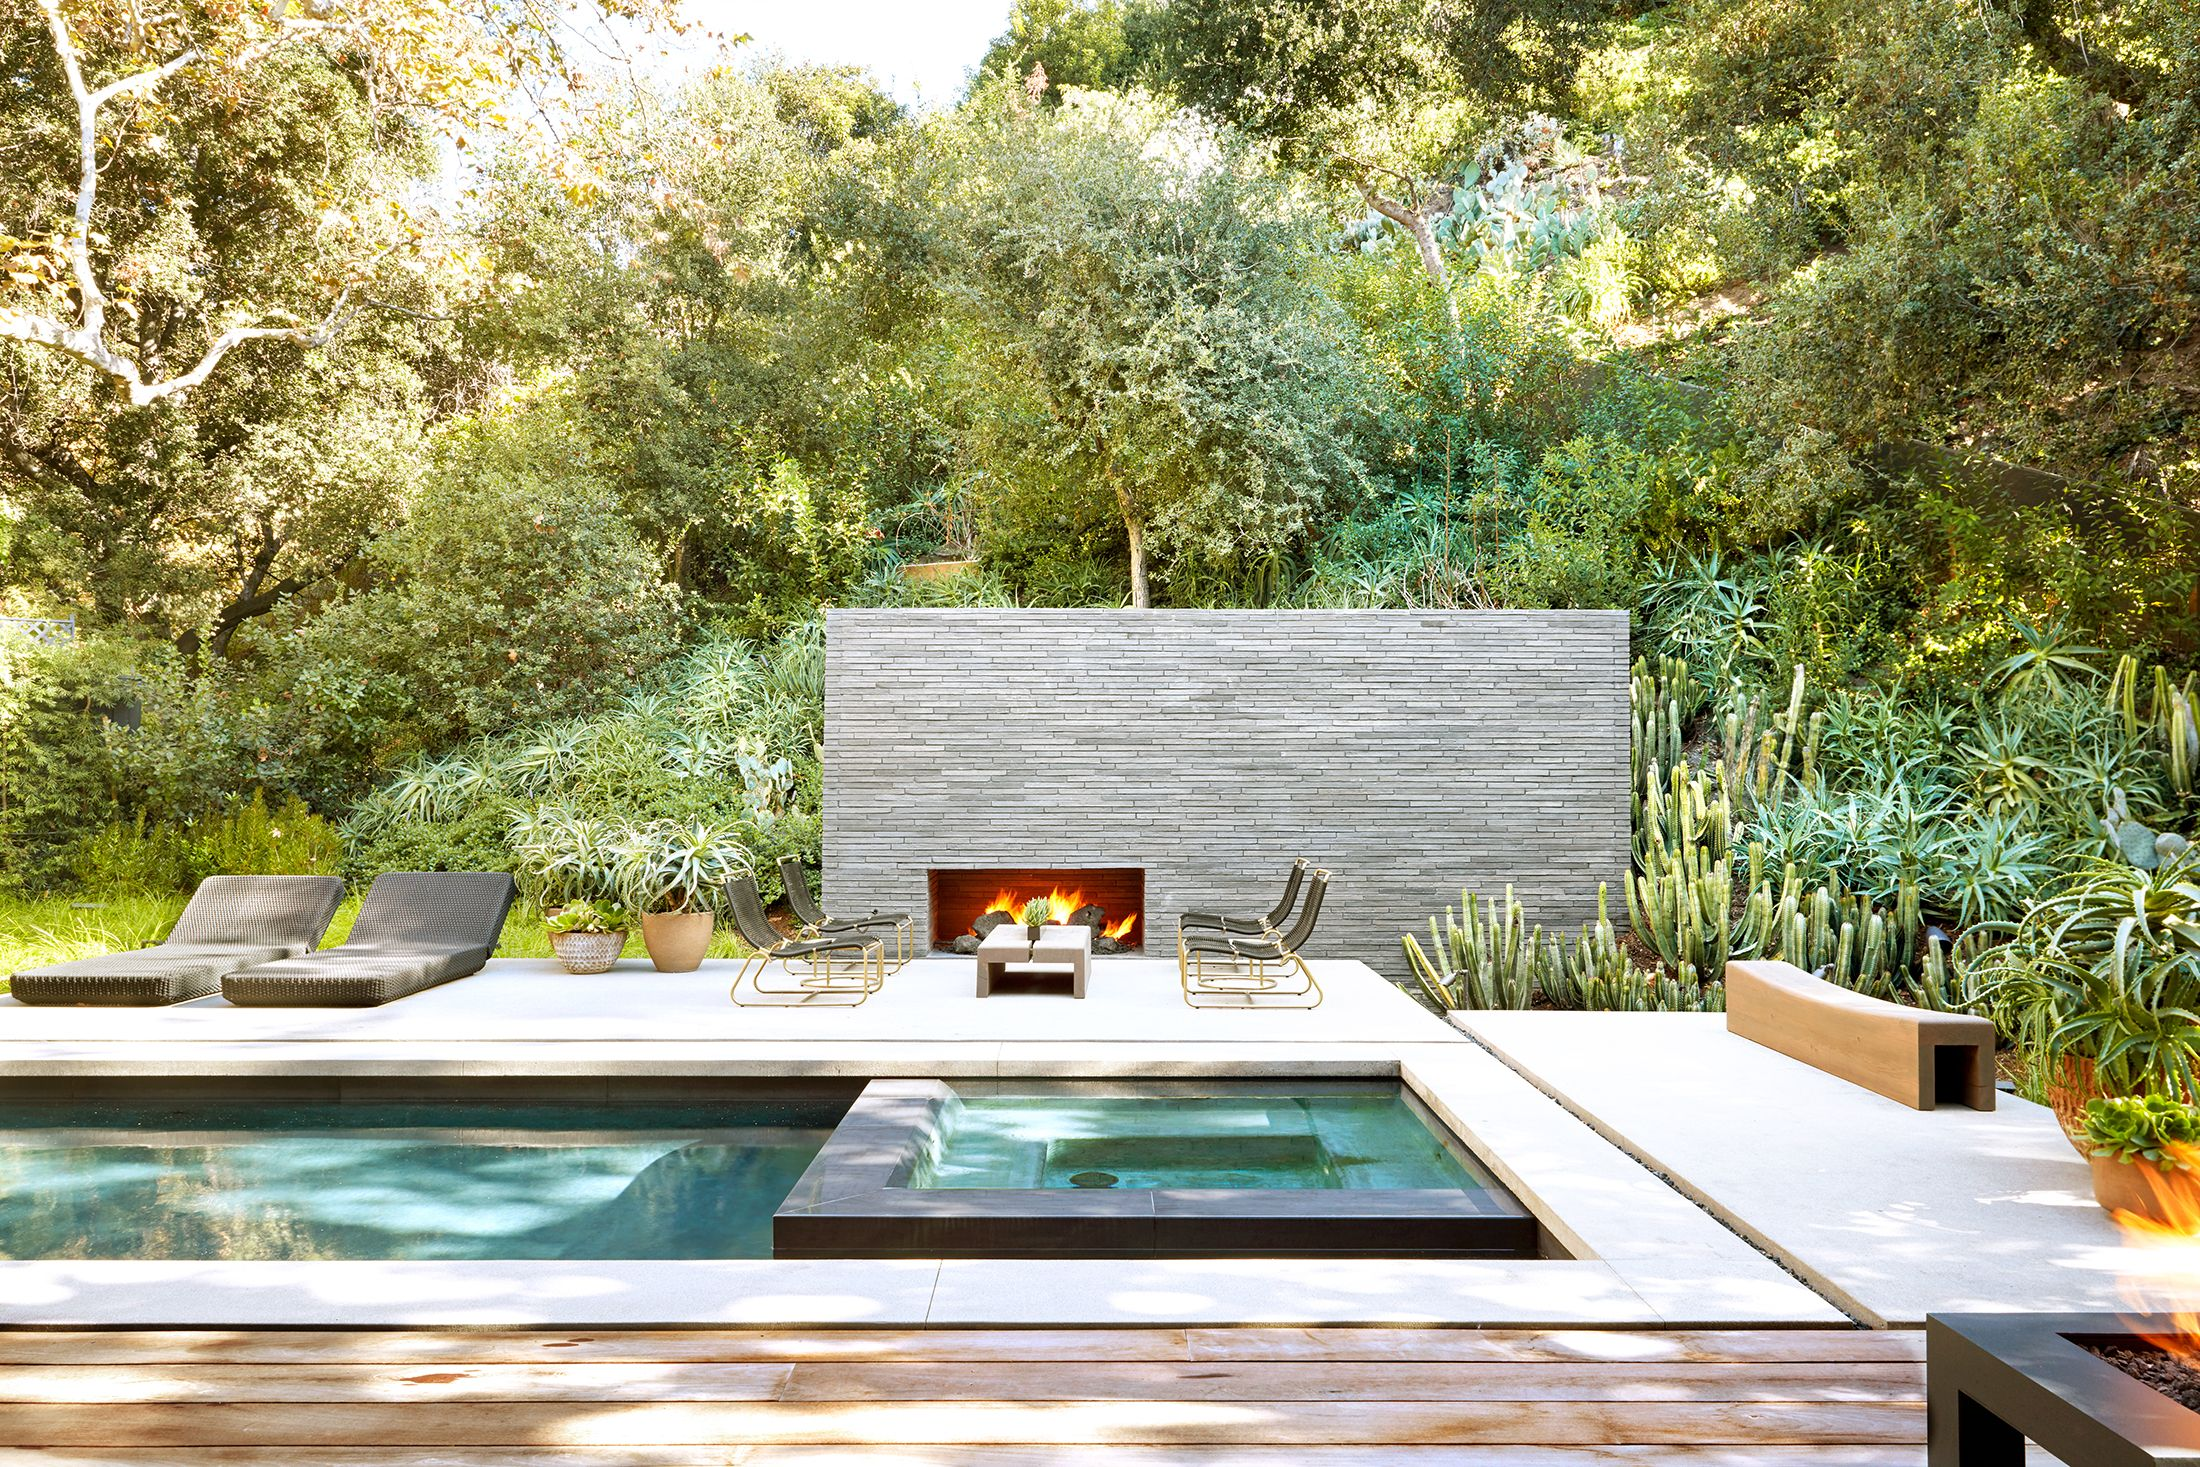 How to Choose the Best Deck Material for Your House